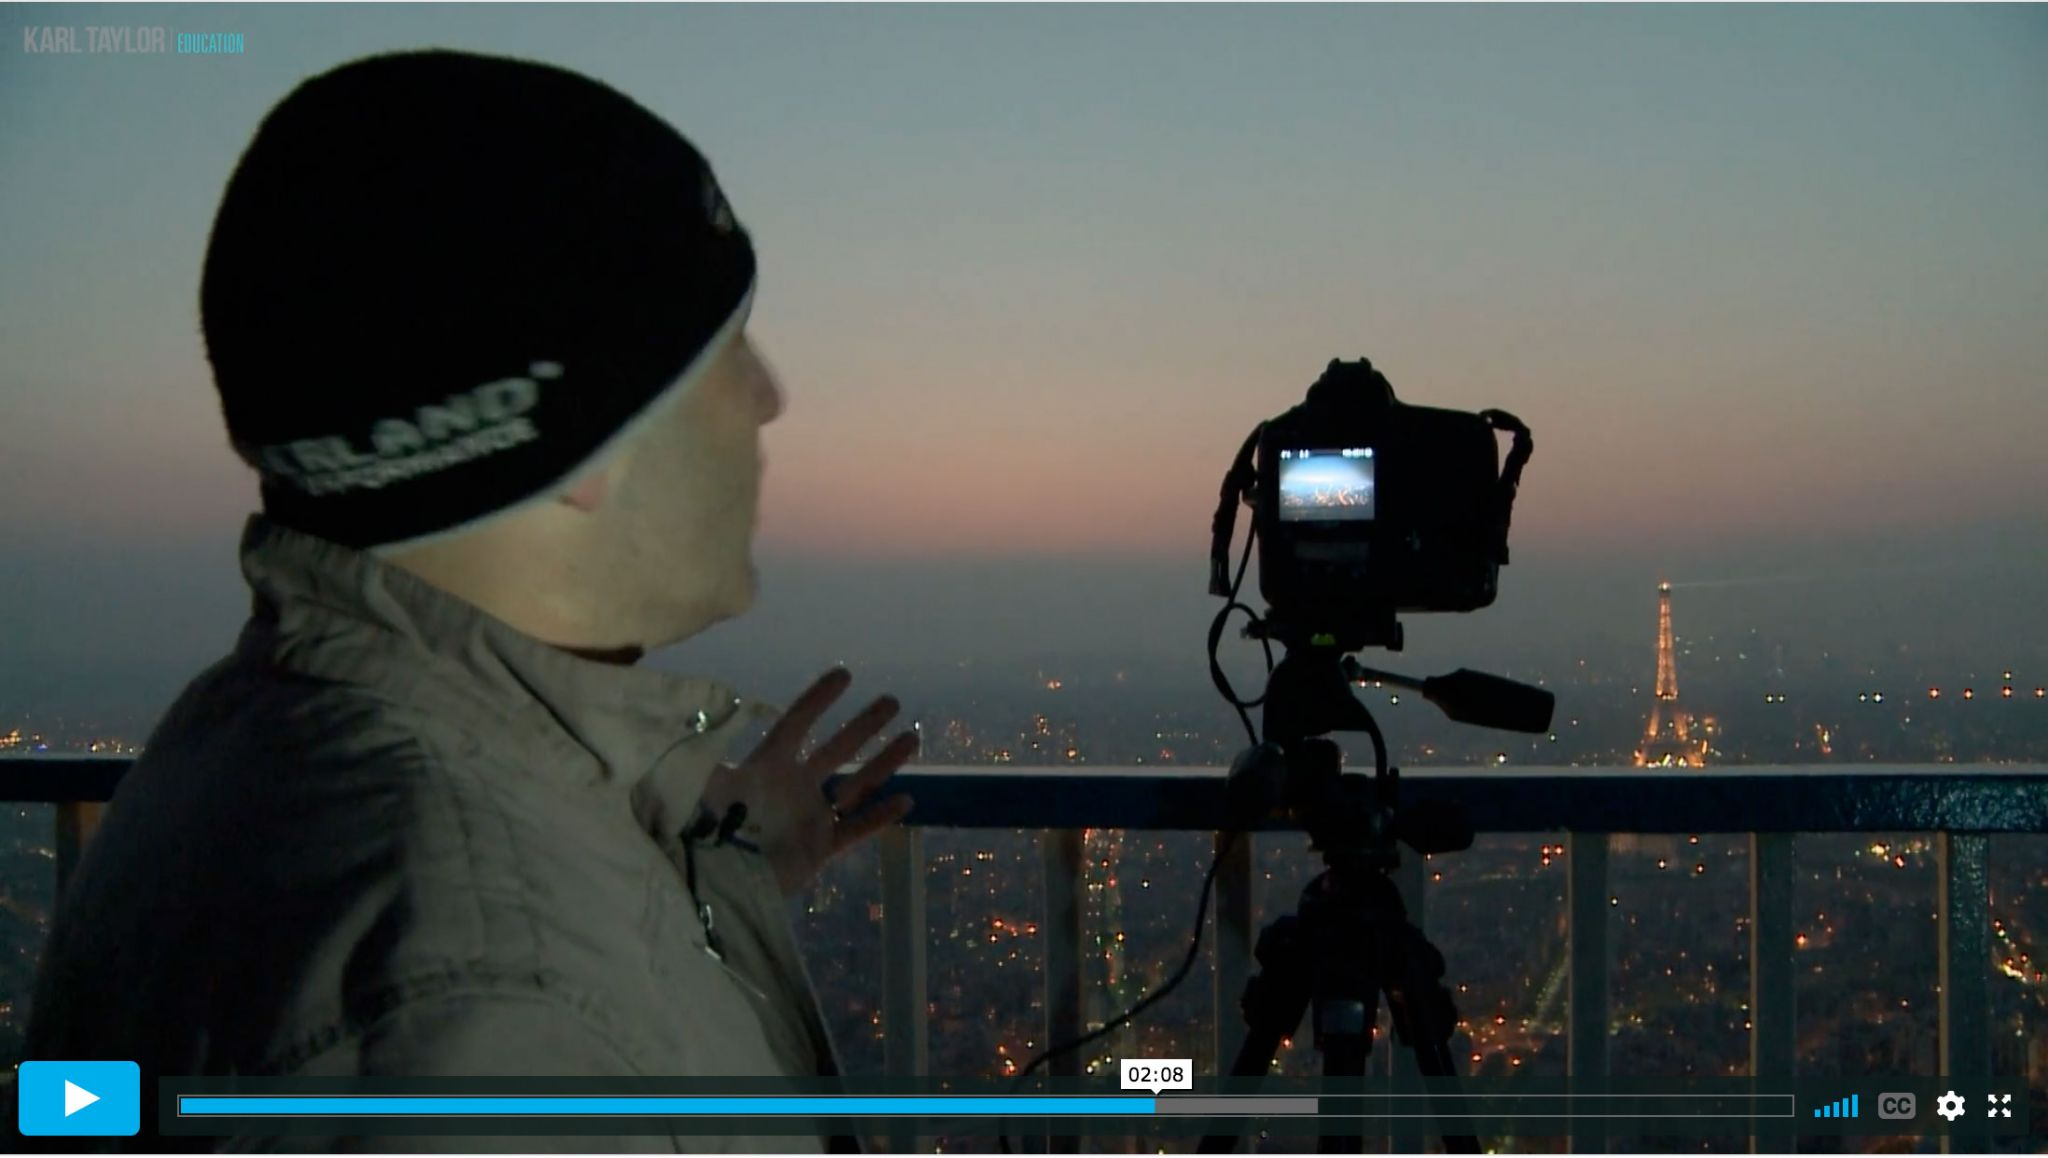 Photographing cityscapes at sunset